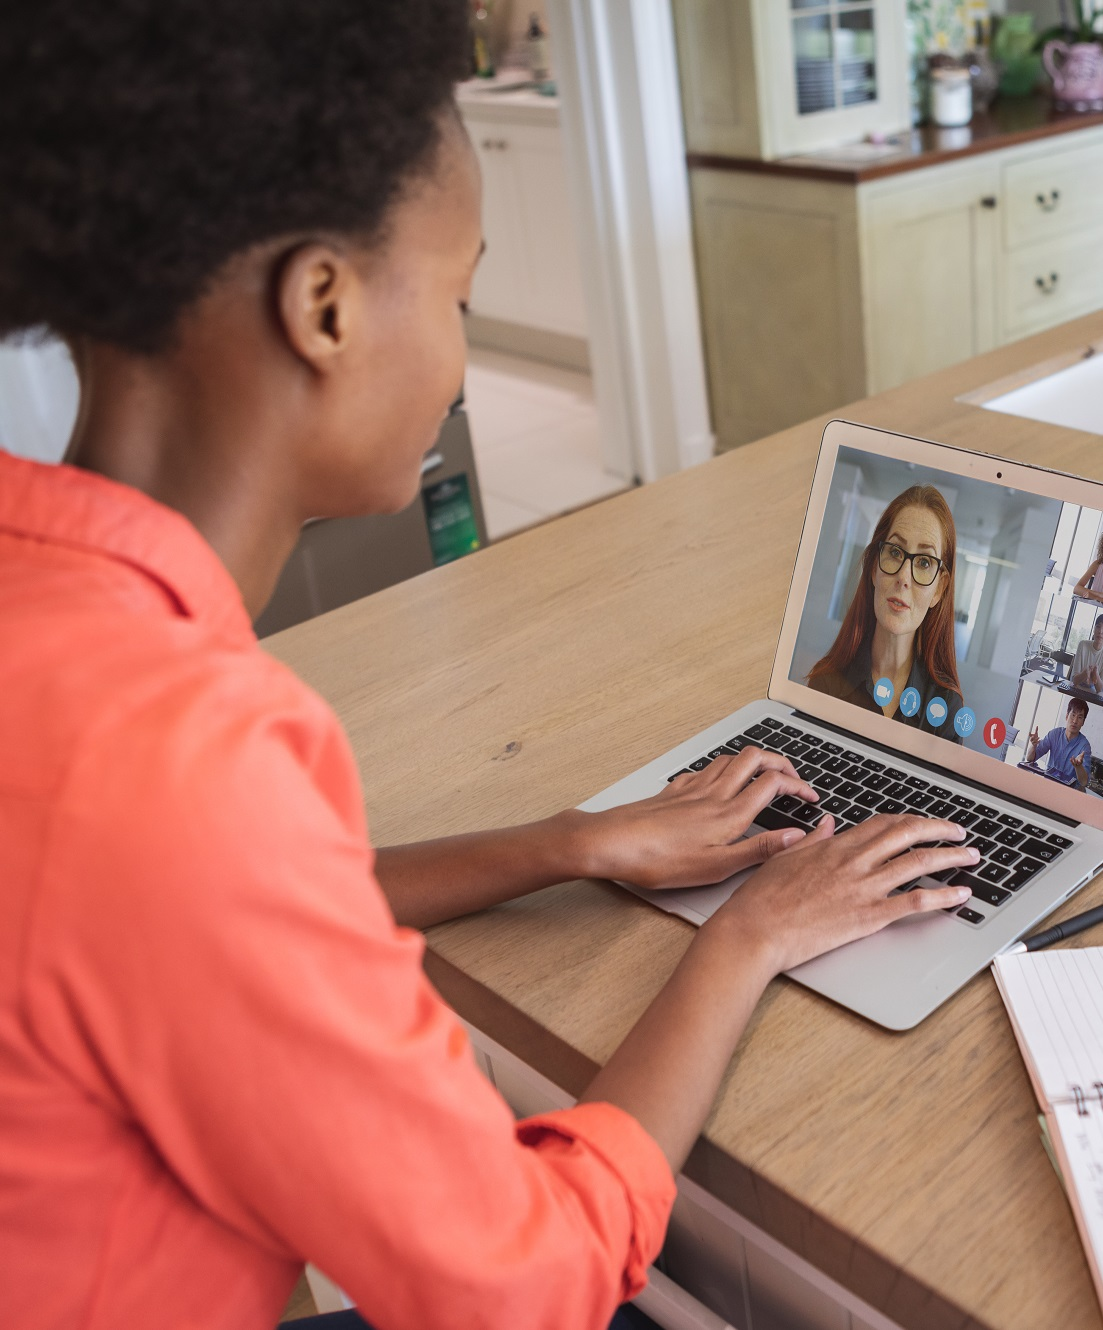 woman having a video meeting on a laptop